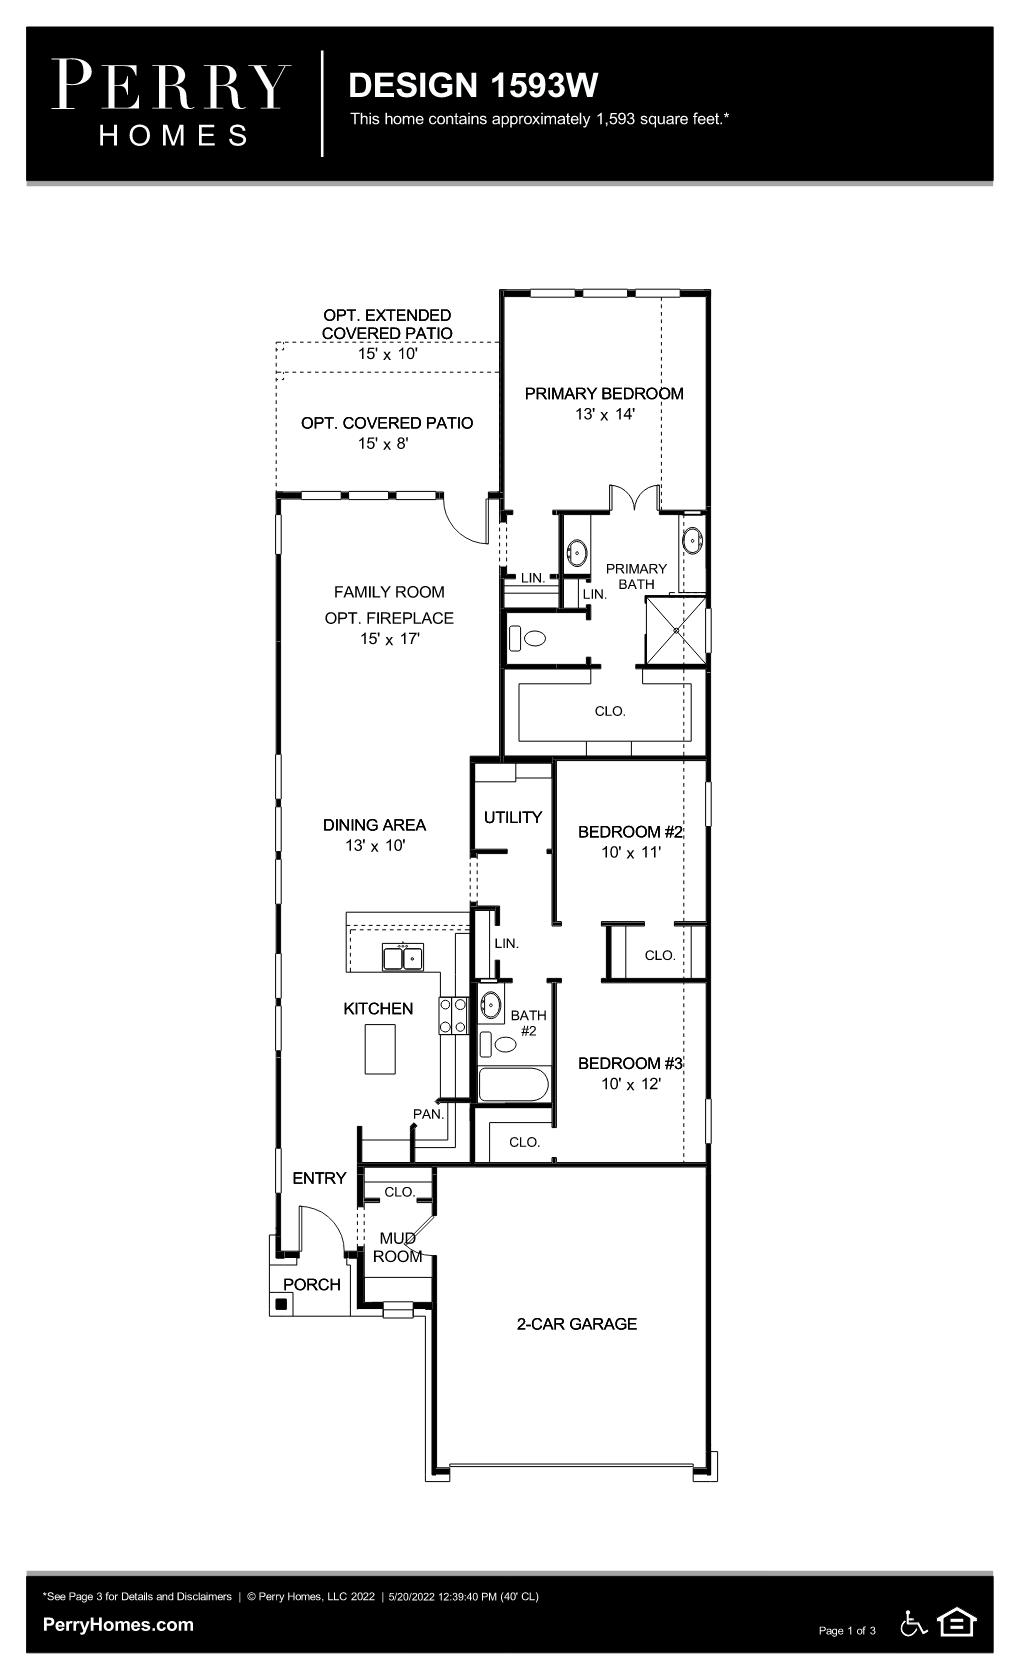 Floor Plan for 1593W